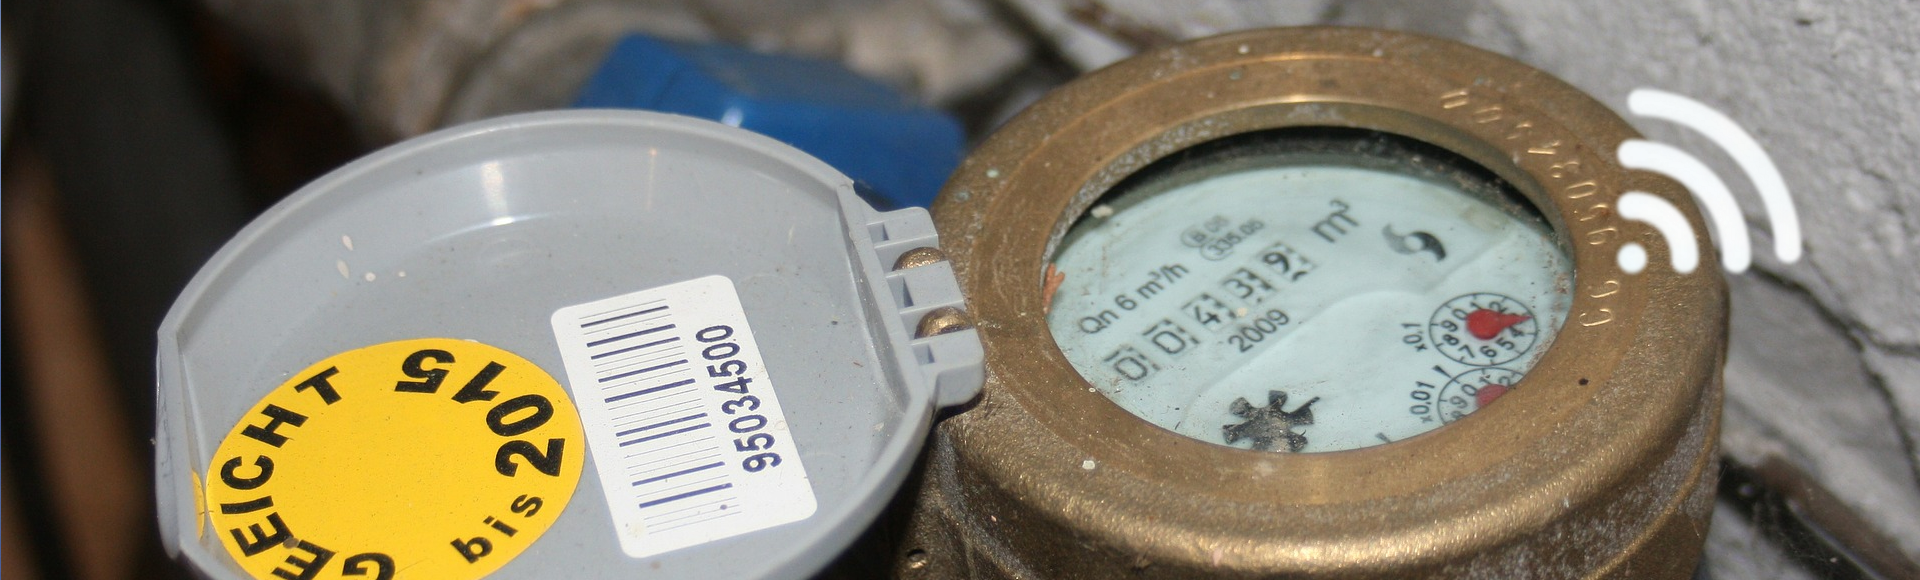 NB-IoT for Smart Water Meter Systems